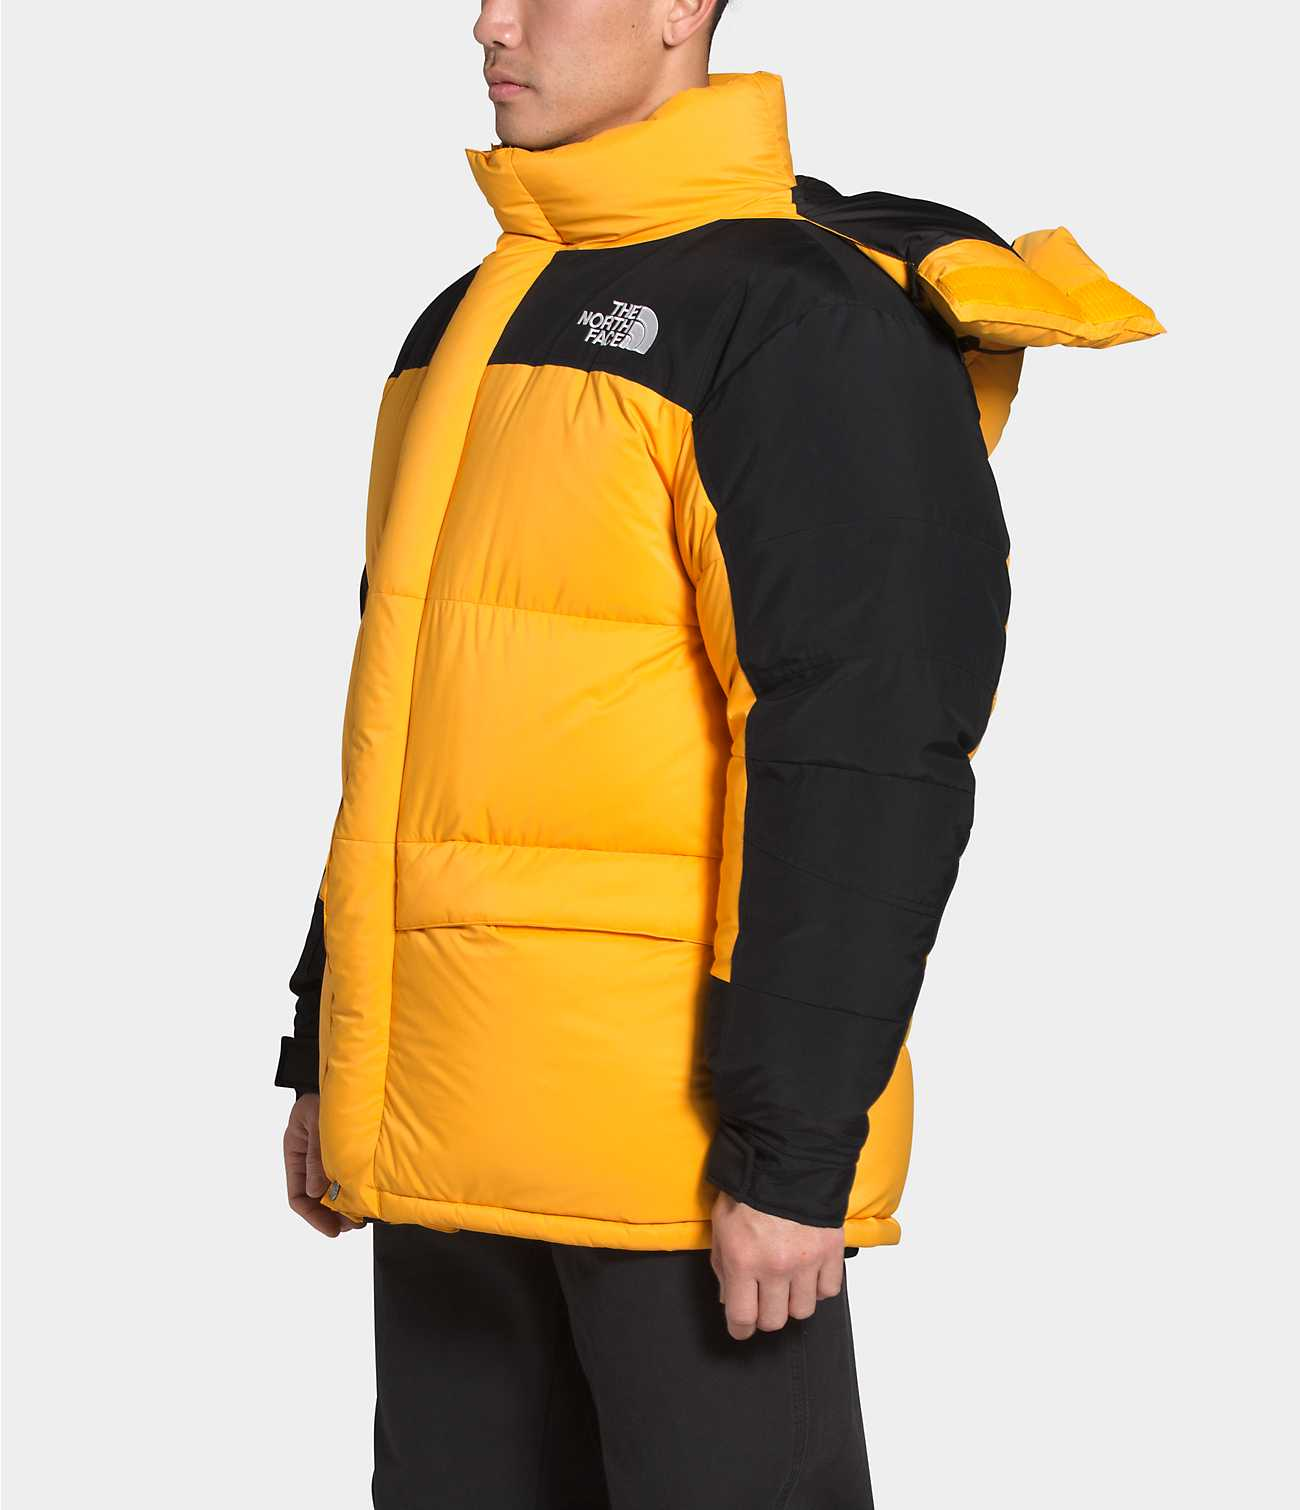 THE NORTH FACE M'S OUTDOOR JKT 1994 RETRO HIMALAYAN FUTURELIGHT PARKA